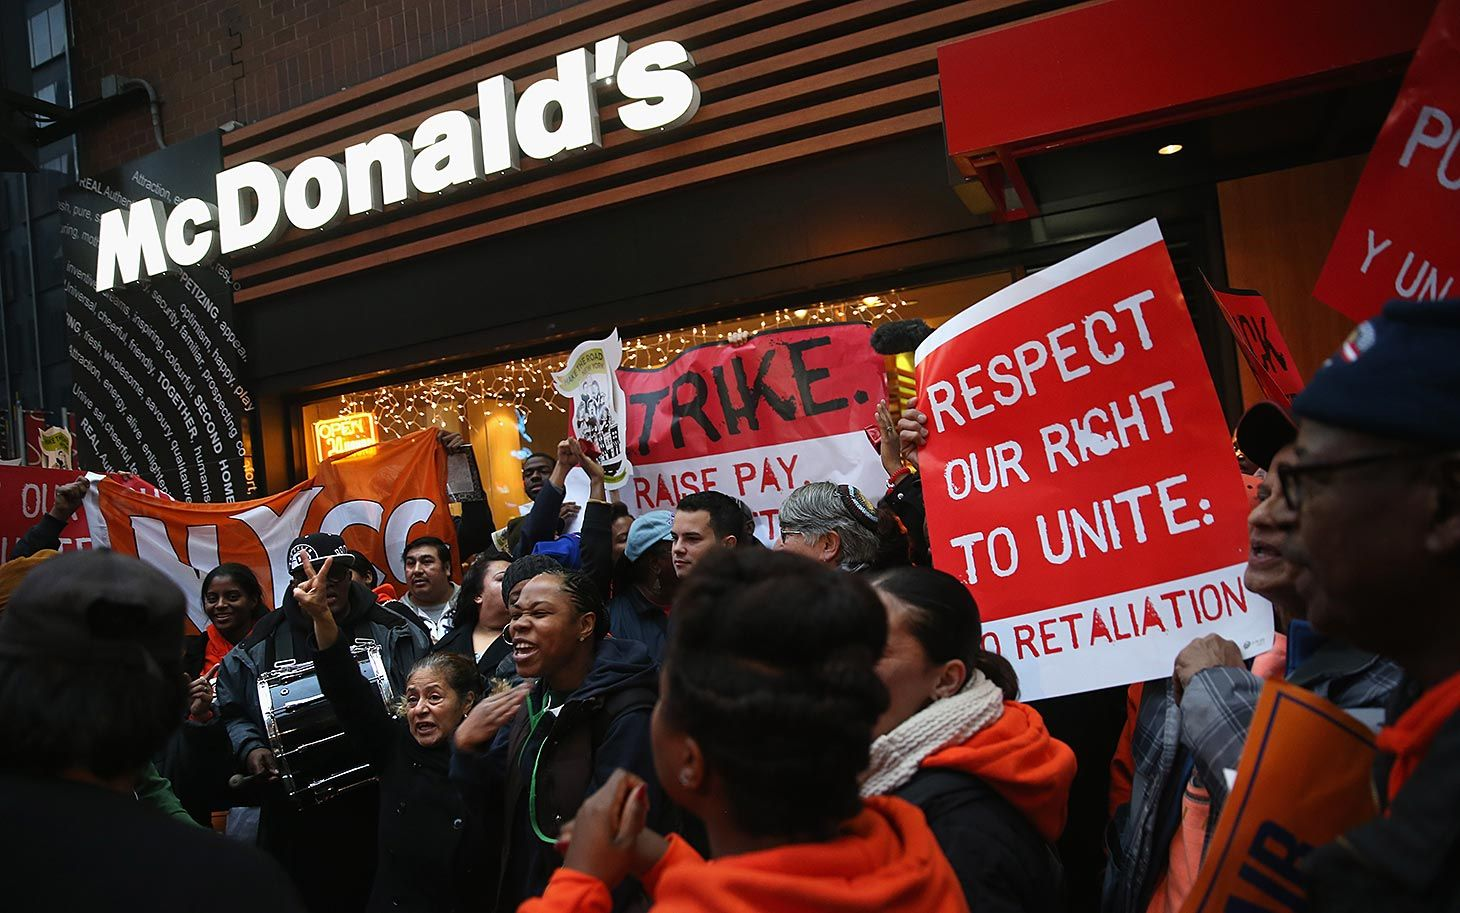 How restaurant lobby blocks living wage for fast food workers - The NRA or National Restaurant Association spent more than 4 million in 2012 alone lobbying Washington, D.C. to keep 13 million fast food workers disempowered. It may come as no surprise that the lobbyists are paid well to ensure poverty wages for millions. A McDonald's CEO makes about 580 times what a full-time minimum wage worker makes. Is it any wonder that it's so hard for fast food minimum wage workers to survive!